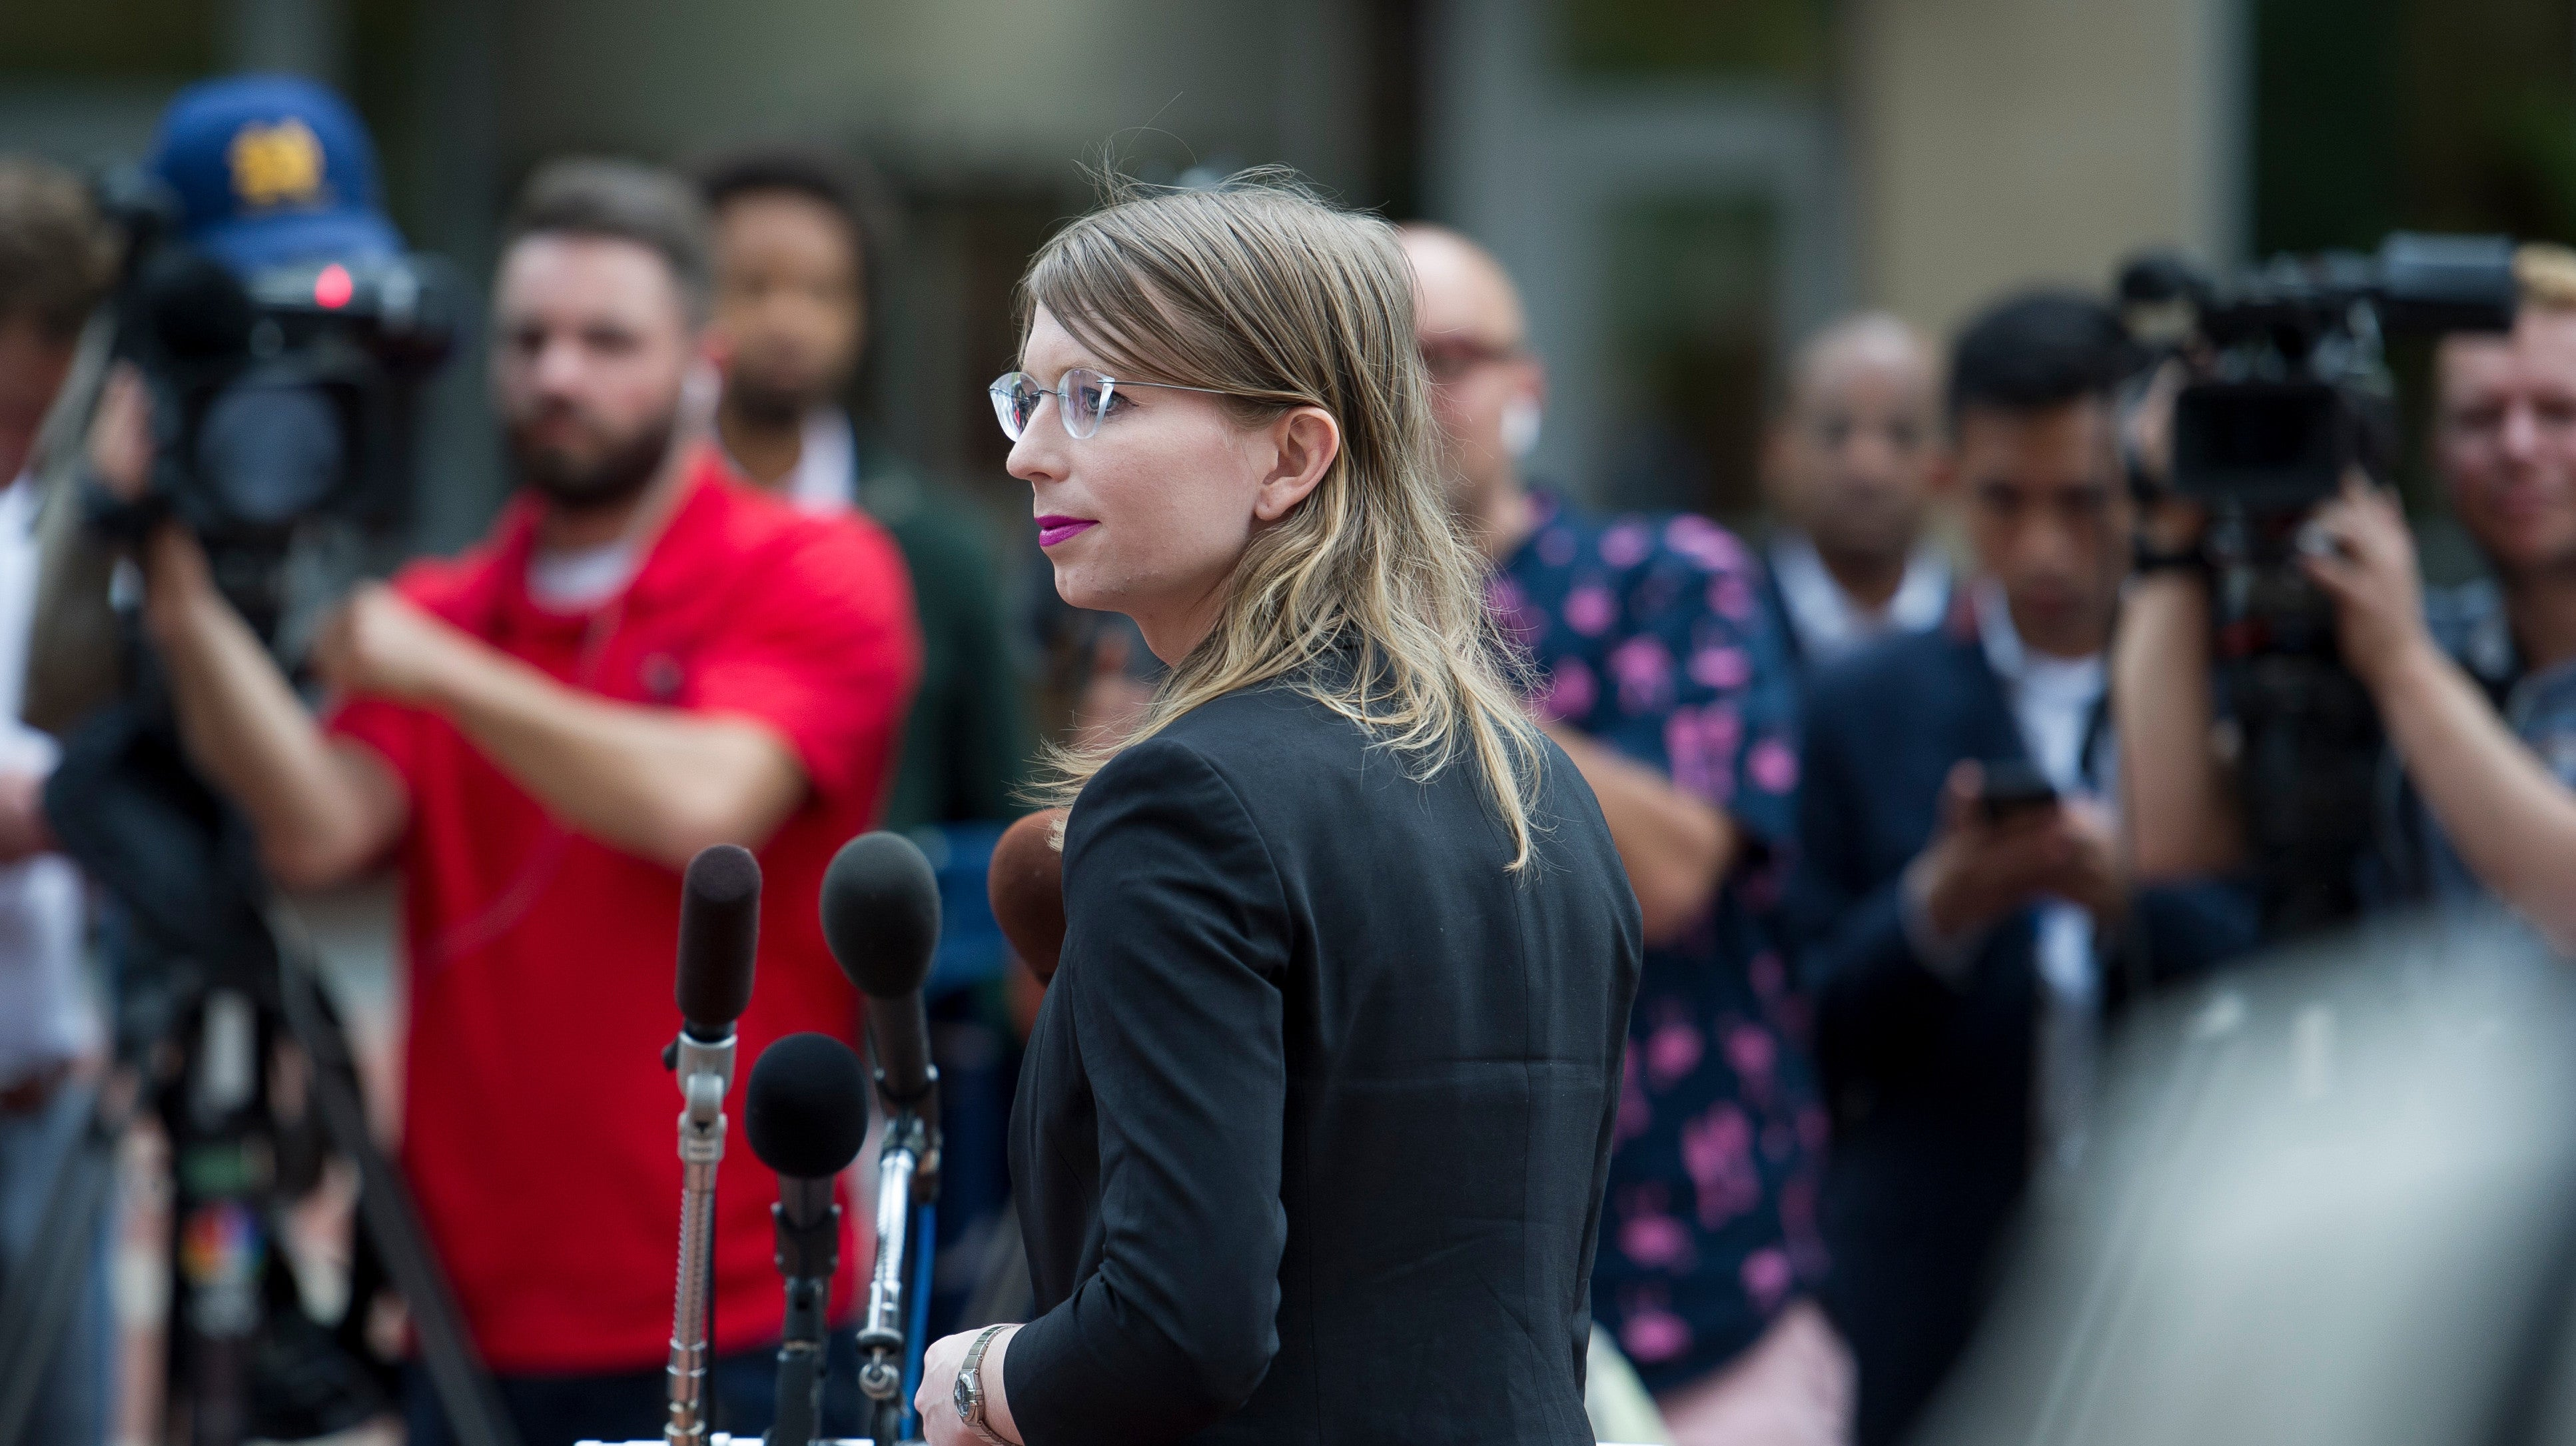 Chelsea Manning's Lawyers Ask Again For Her Release, Say She'll Never 'Betray Her Principles'